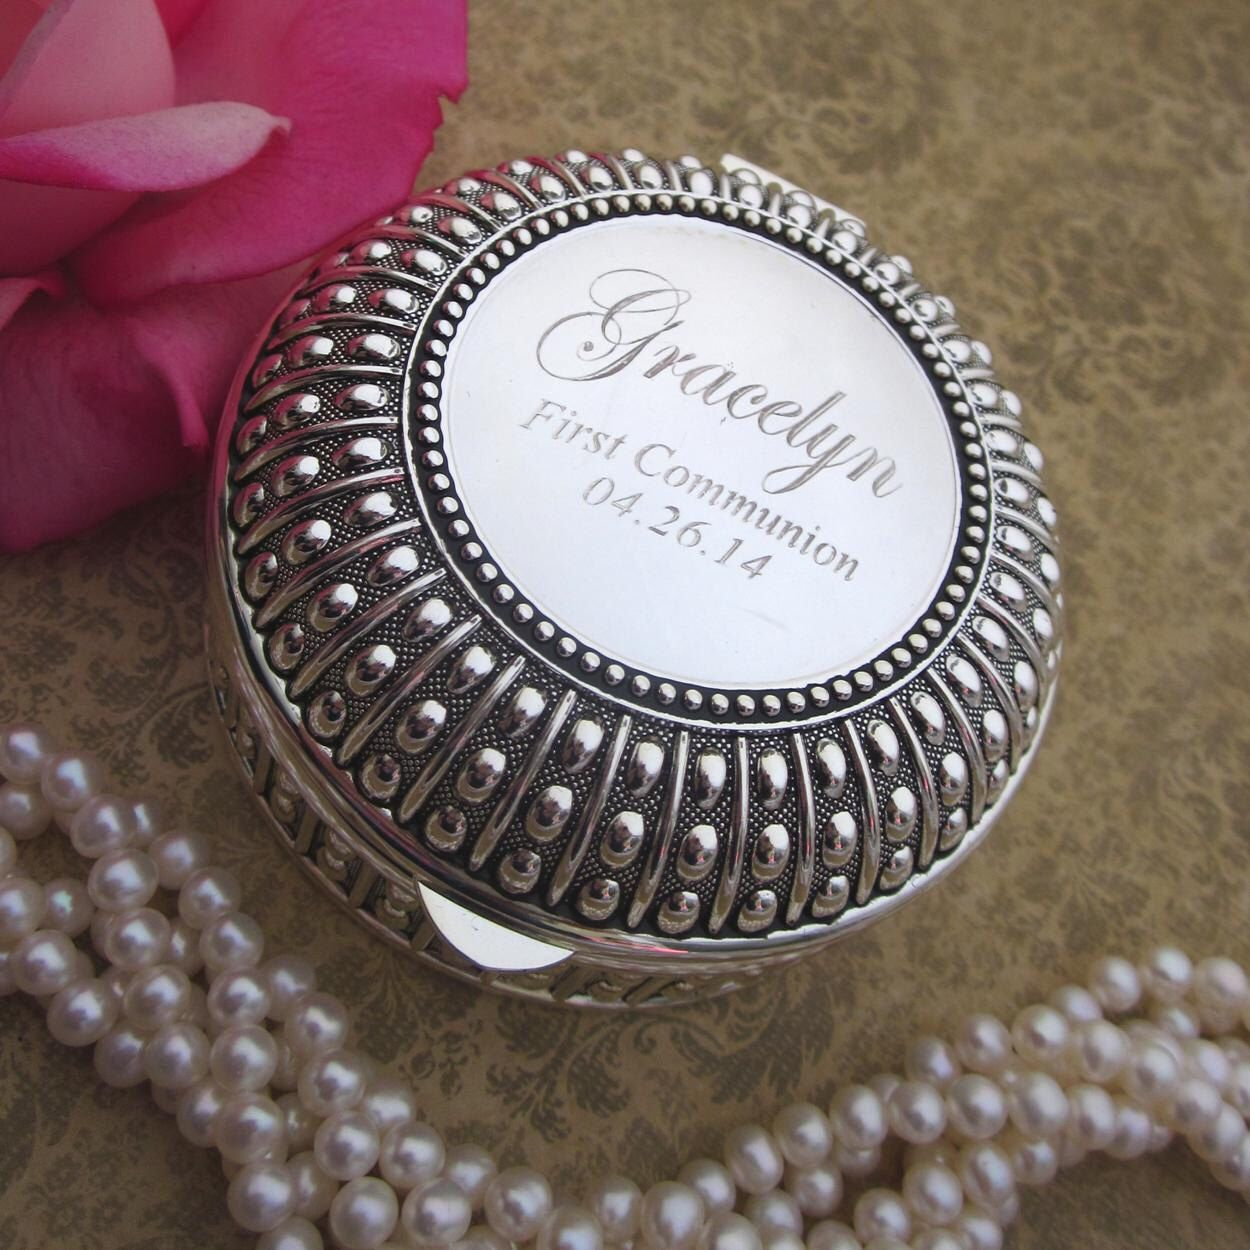 Personalized Trinket Box Engraved Jewelry Box FIrst Communion